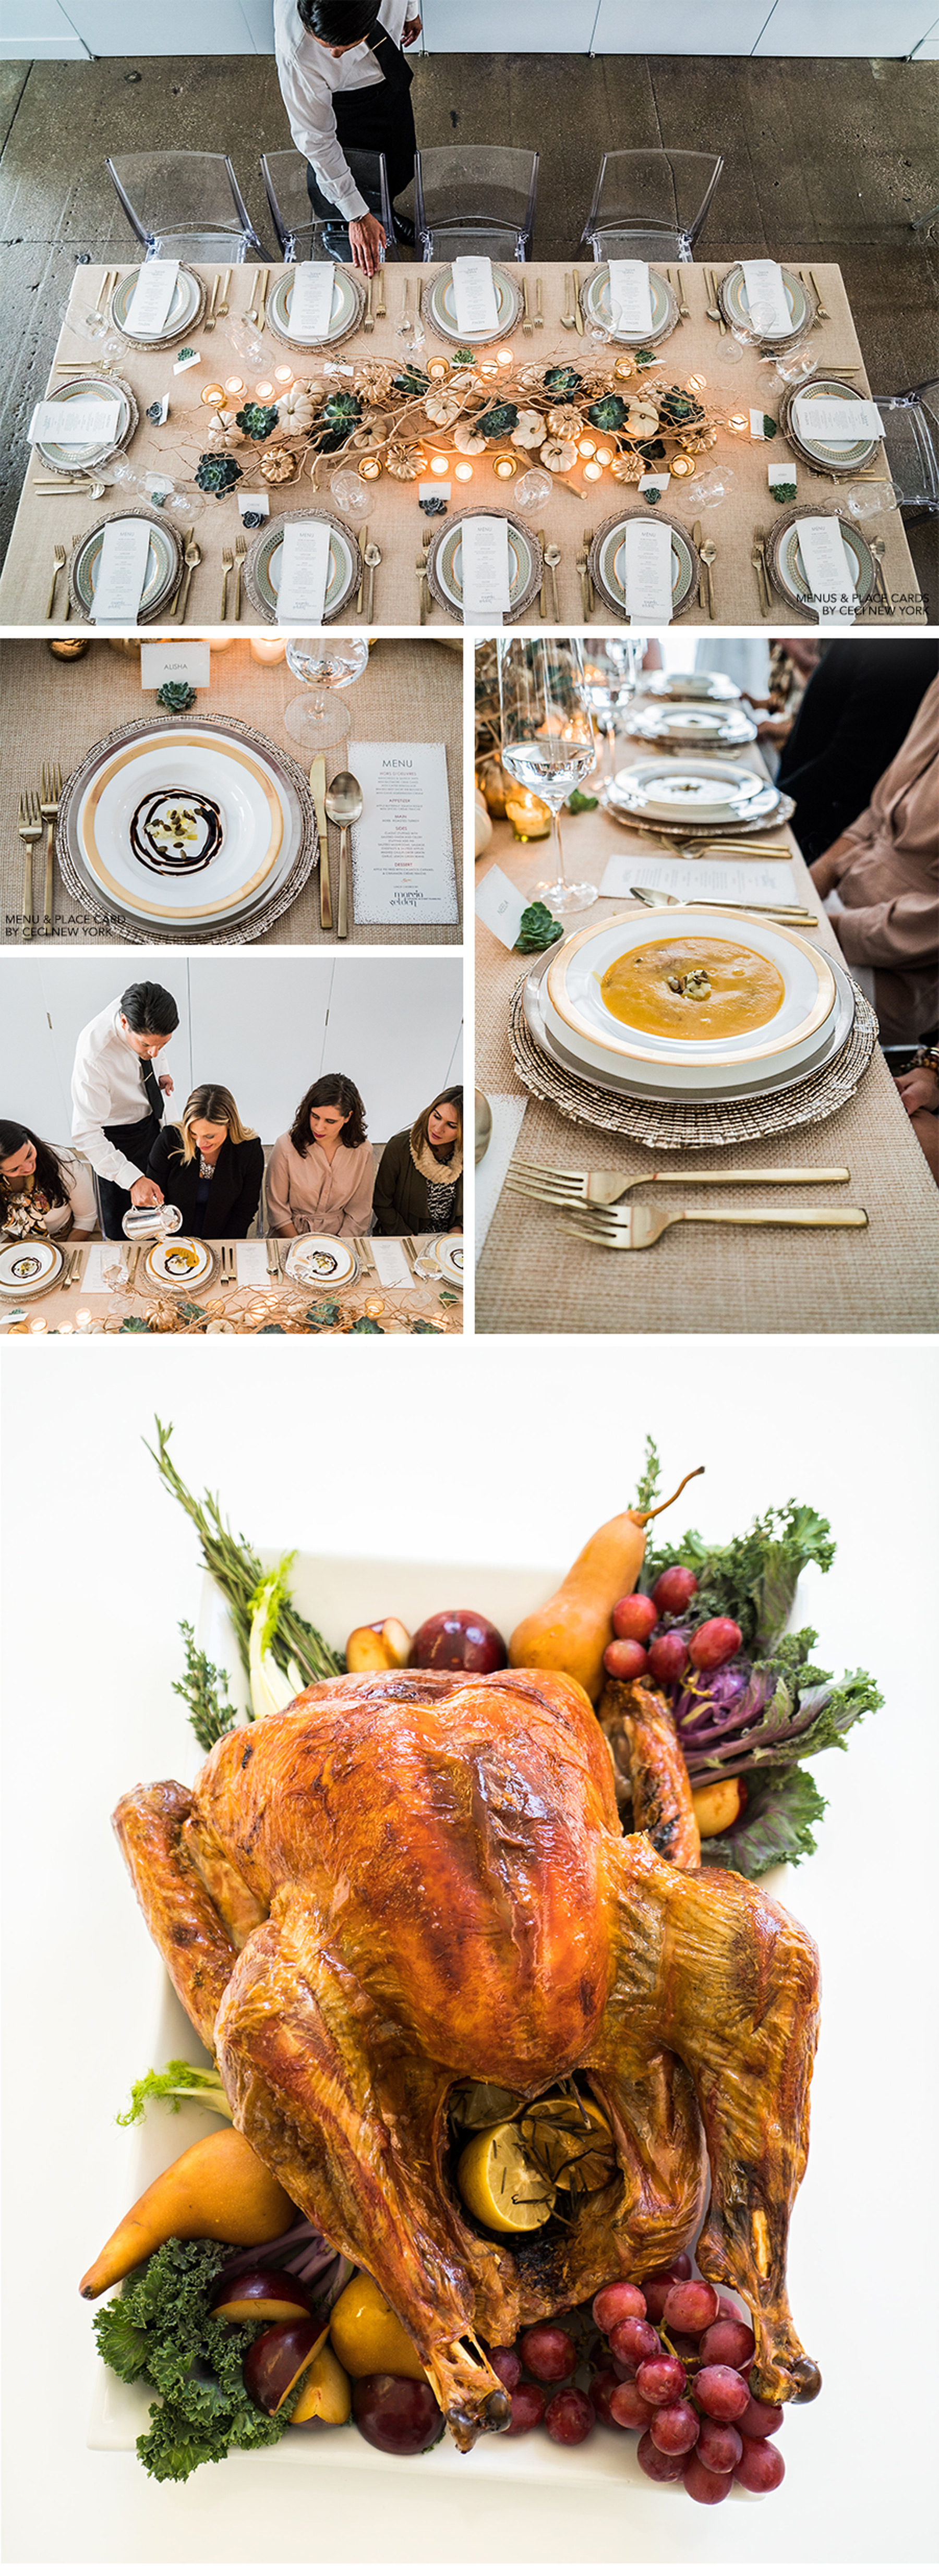 Our Muse - Team Ceci Celebrates a Modern Thanksgiving - Be inspired by Ceci New York's chic, contemporary Thanksgiving celebration - ceci johnson, contemporary thanksgiving, mcardles florist and garden center, marcia selden catering & event planning, jeffrey selden, parris whittingham, smith party rentals, ceci new york, team ceci, thanksgiving inspiration, happy holidays